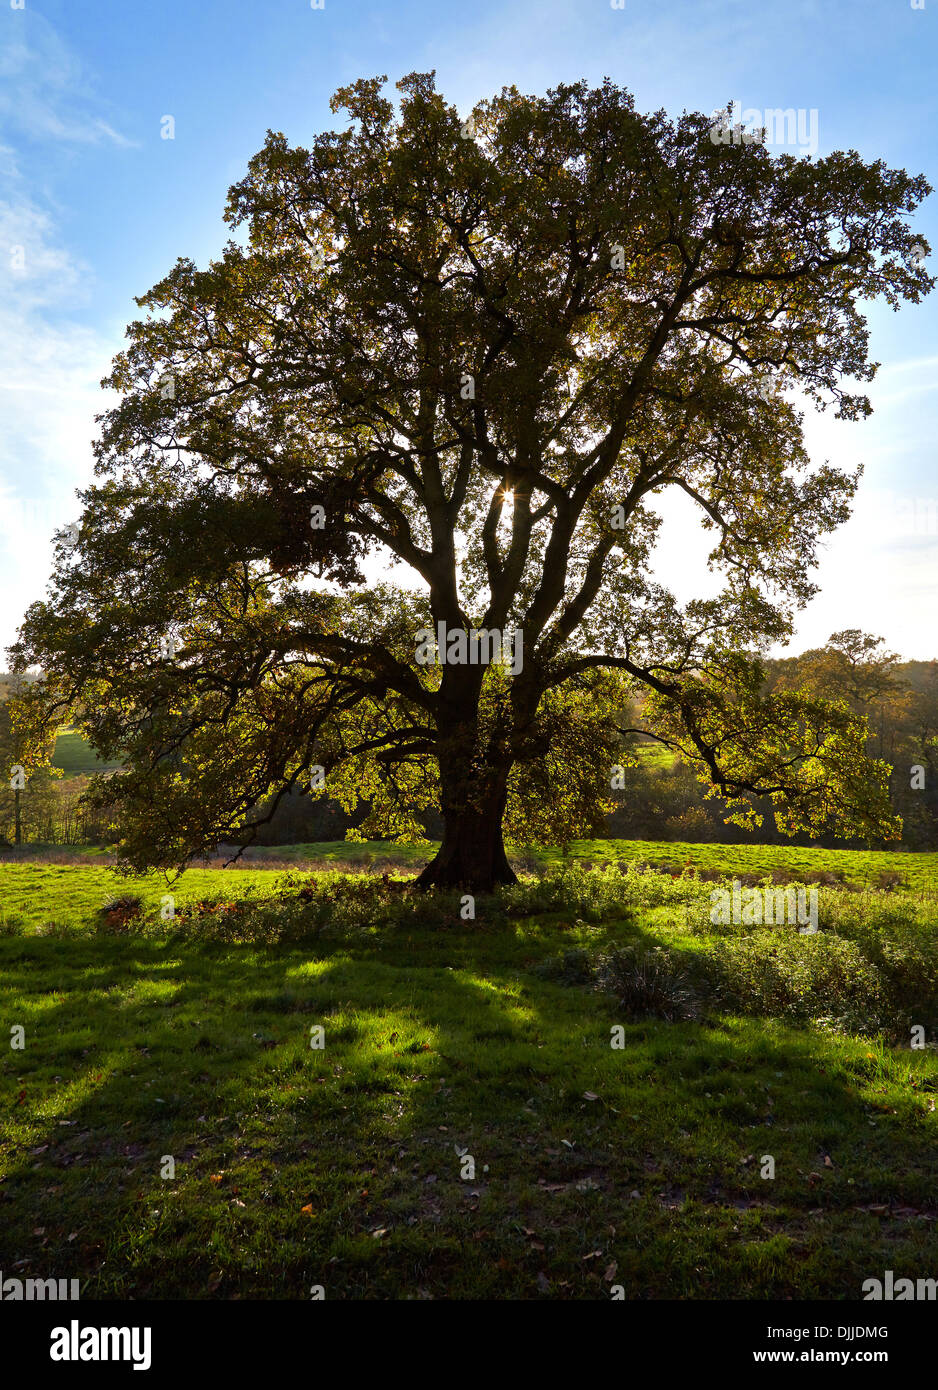 English Oak Quercus robur tree seen against low autumn sunlight in autumn - Stock Image